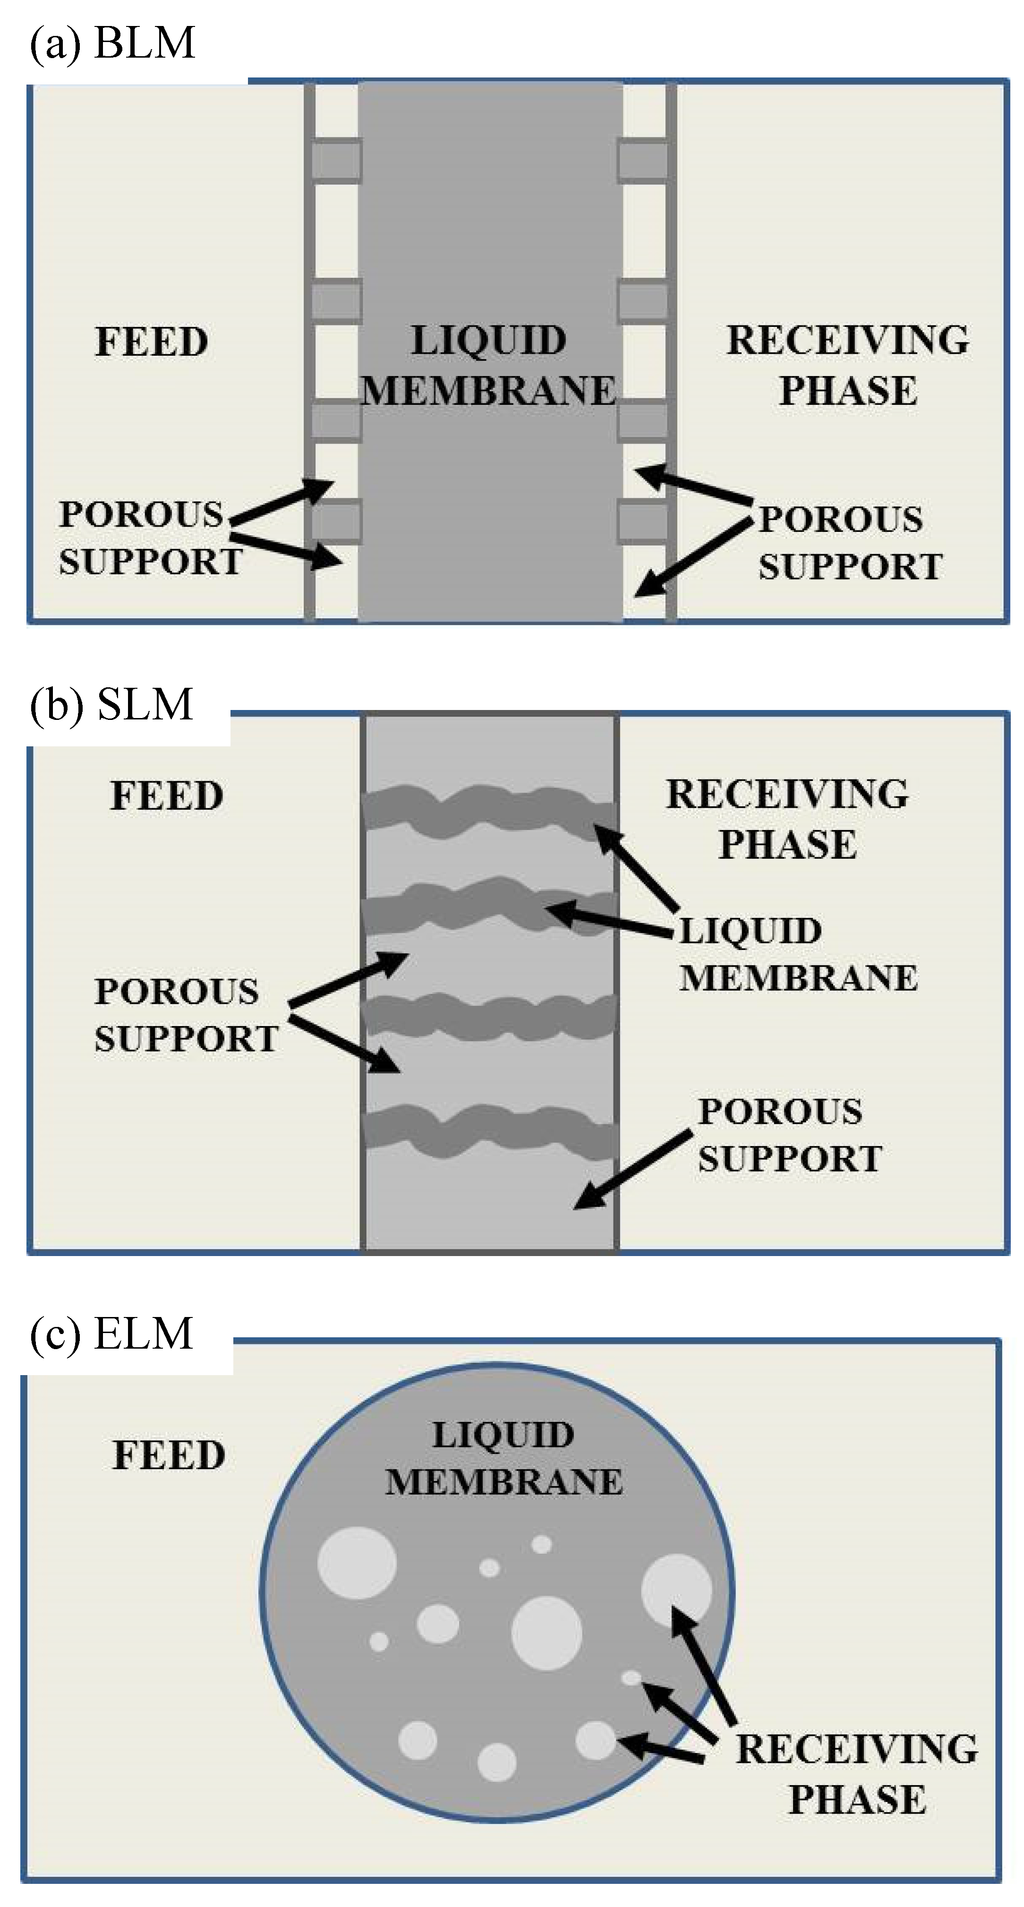 emulsion of liquid membrane for heavy The report covers aspects such as waterproofing membrane market by its key segments including liquid and sheet membrane, high-end and low-end liquid membrane products, emulsion and immobilized liquid membrane, raw materials used, application in various structures, demand from several industries, domestic and international companies, new and .